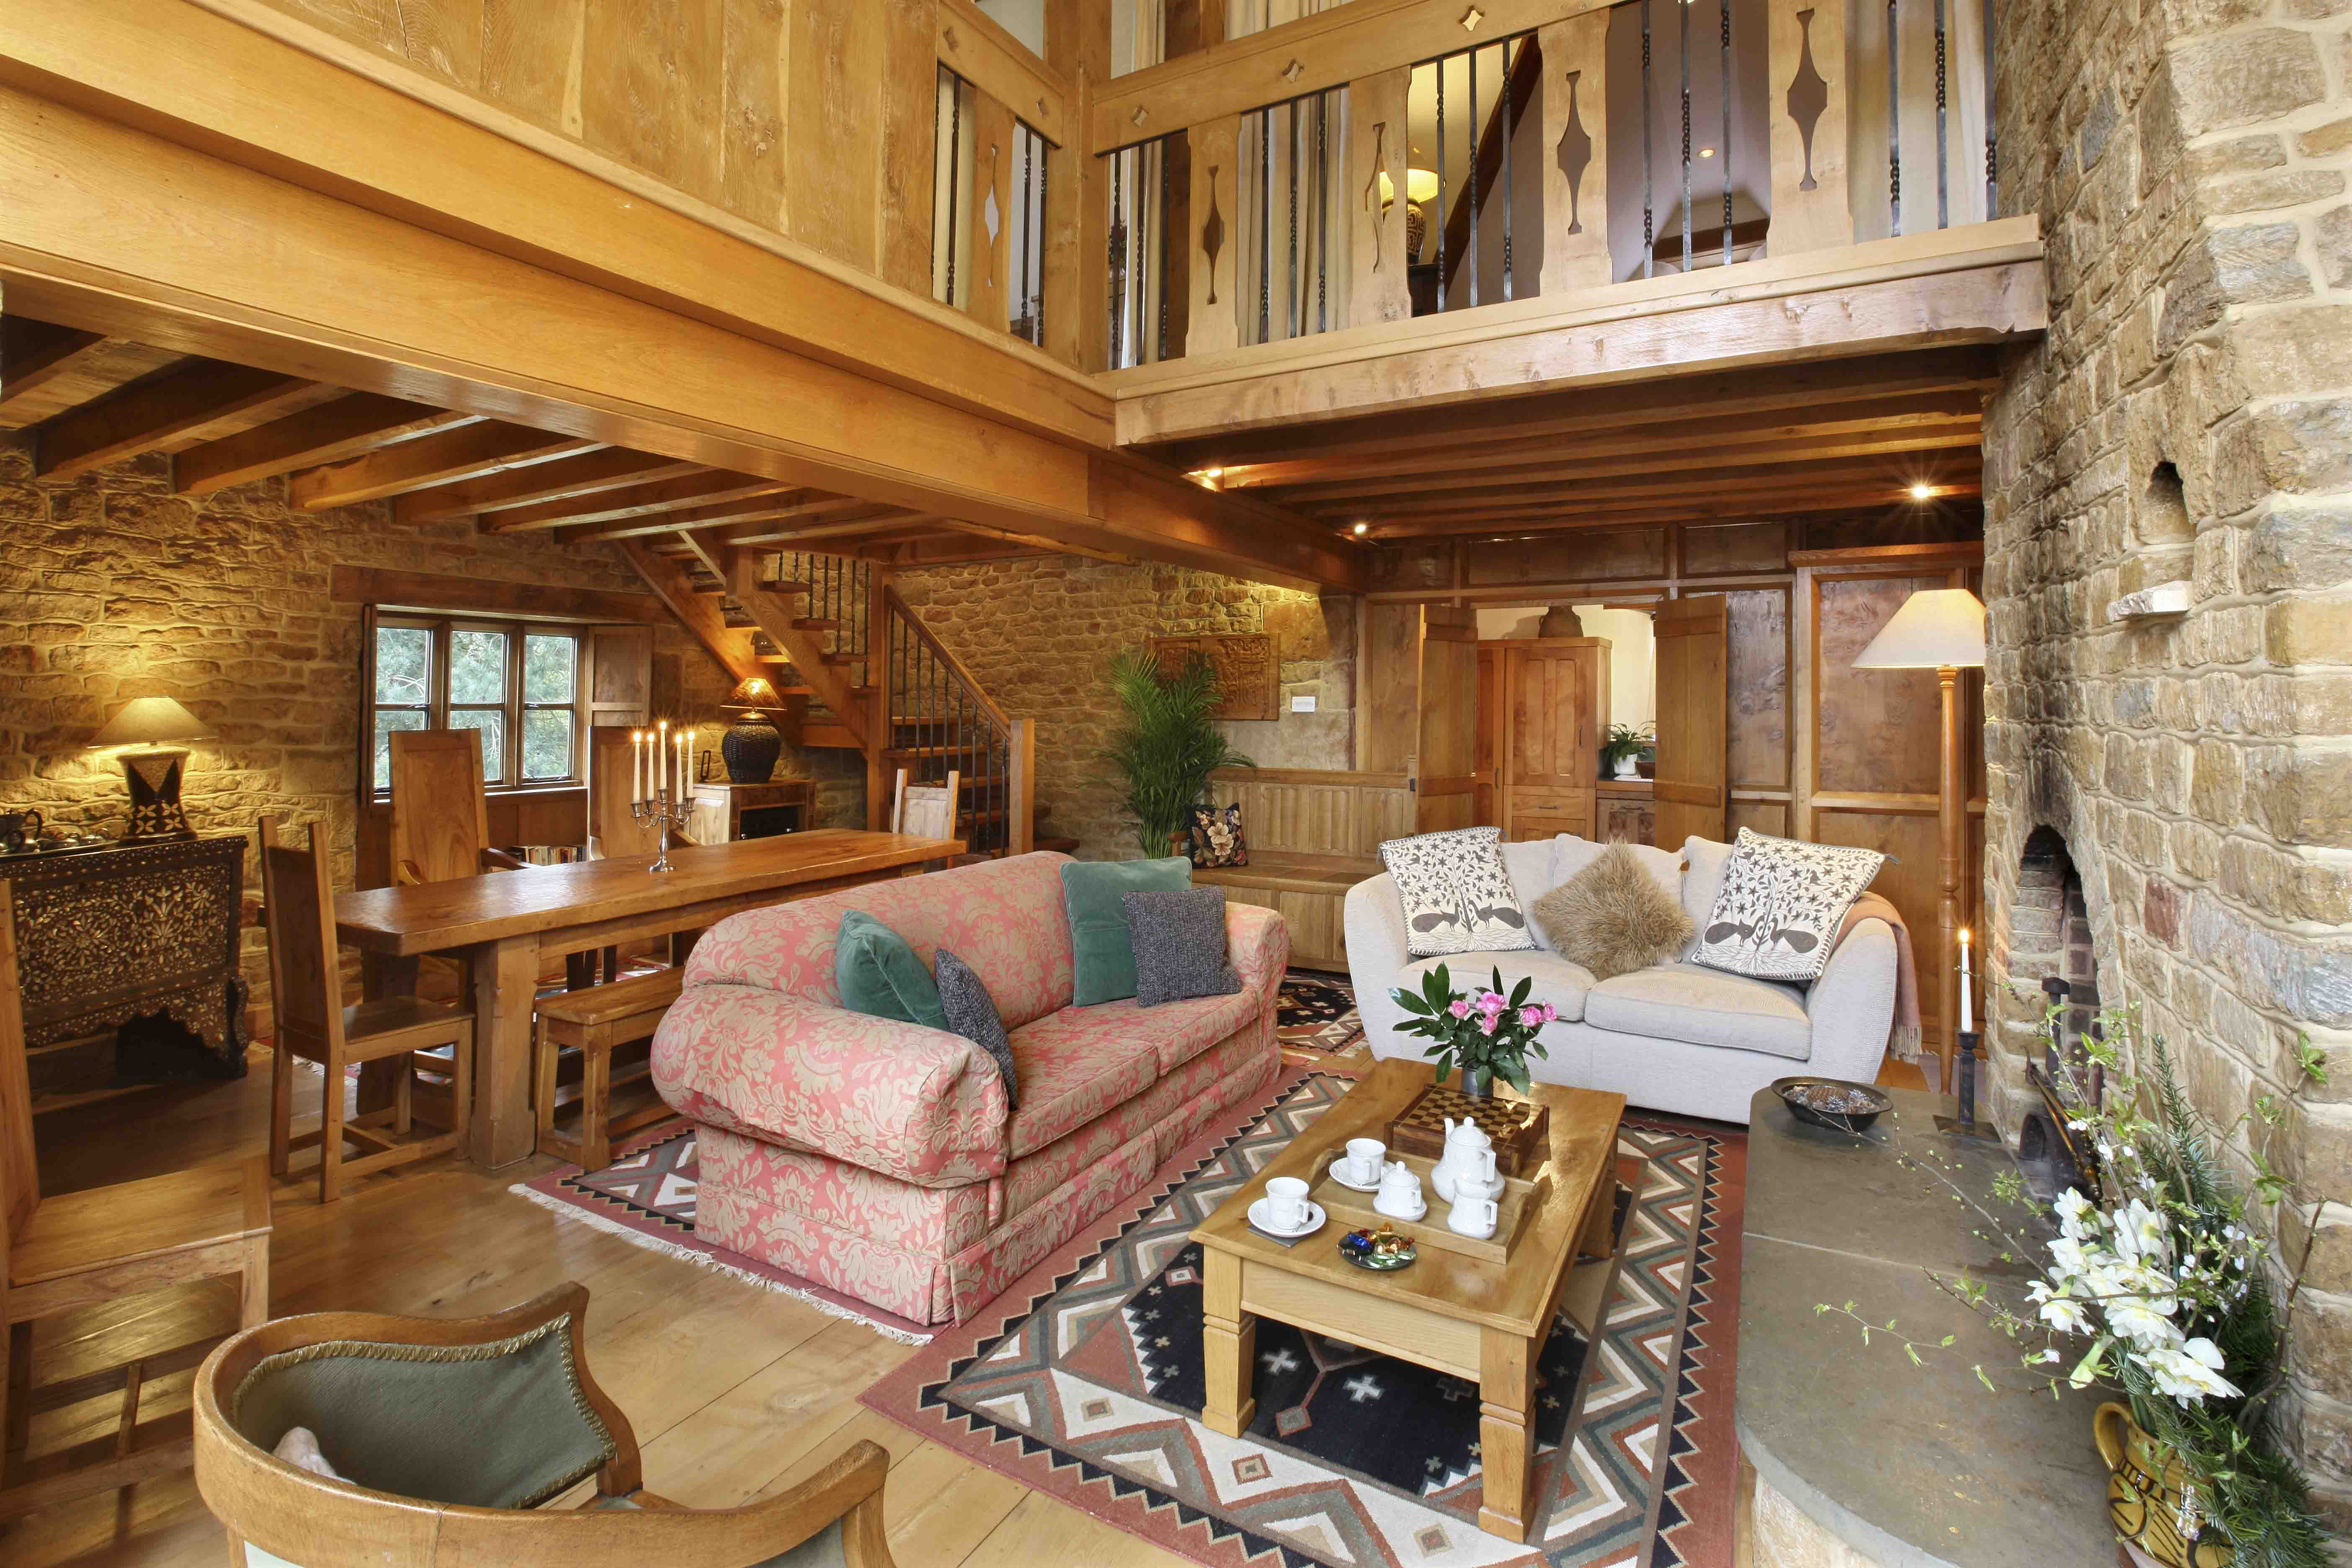 Heath Farm Holiday Cottages is filled with furniture and fittings made by local craftsmen in English hardwoods